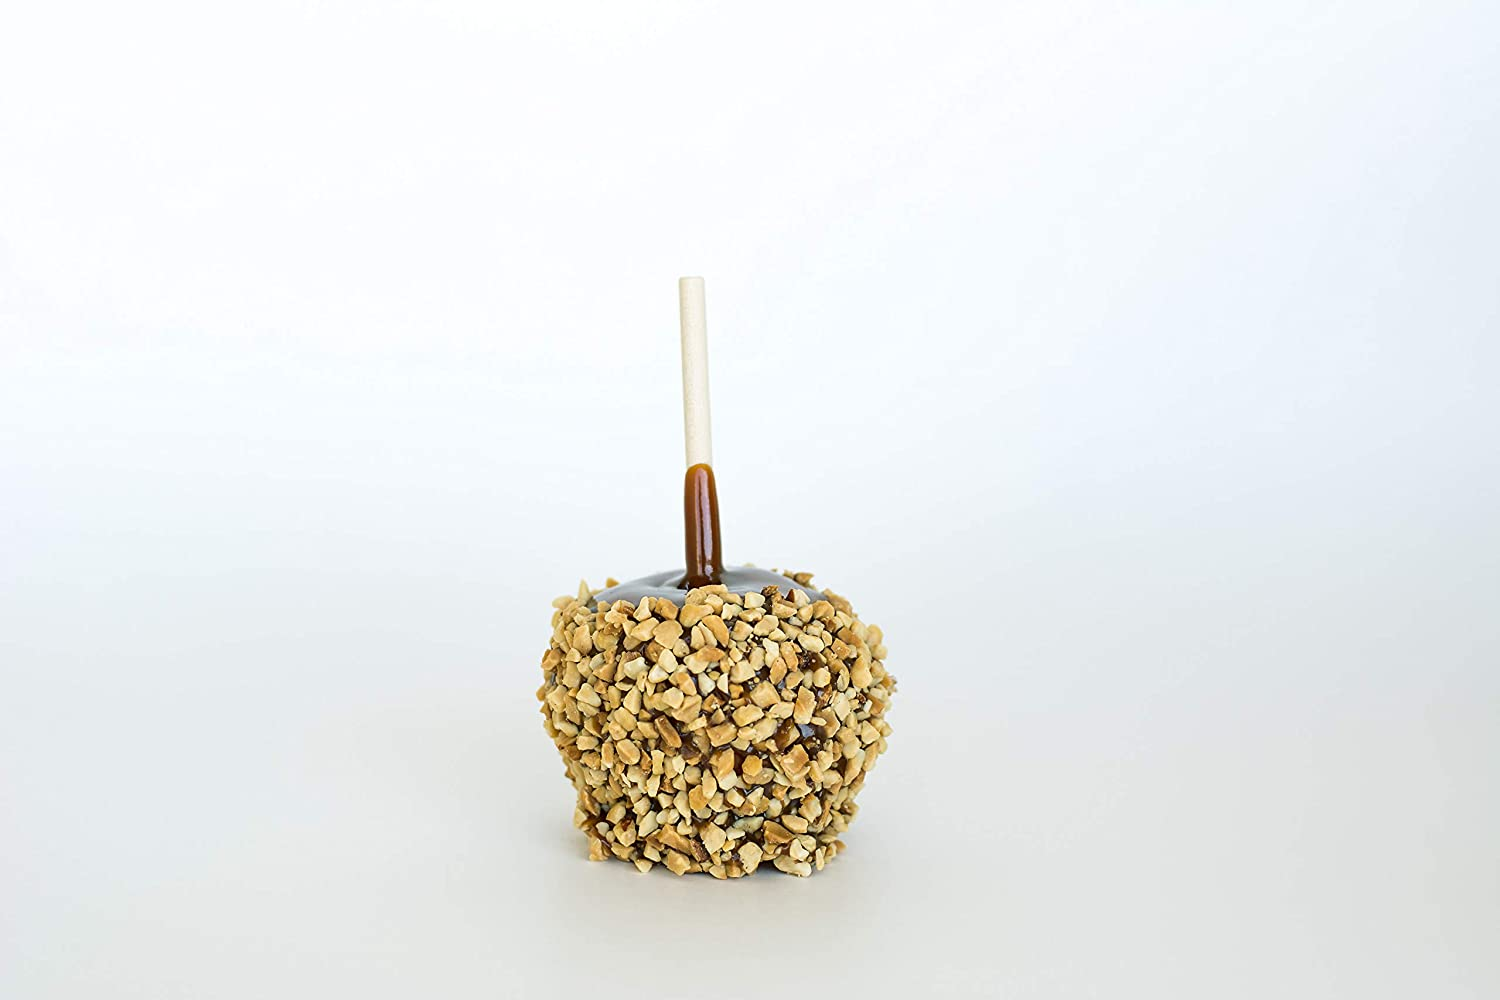 24 Individually Packaged Classic Caramel Apples with Peanuts